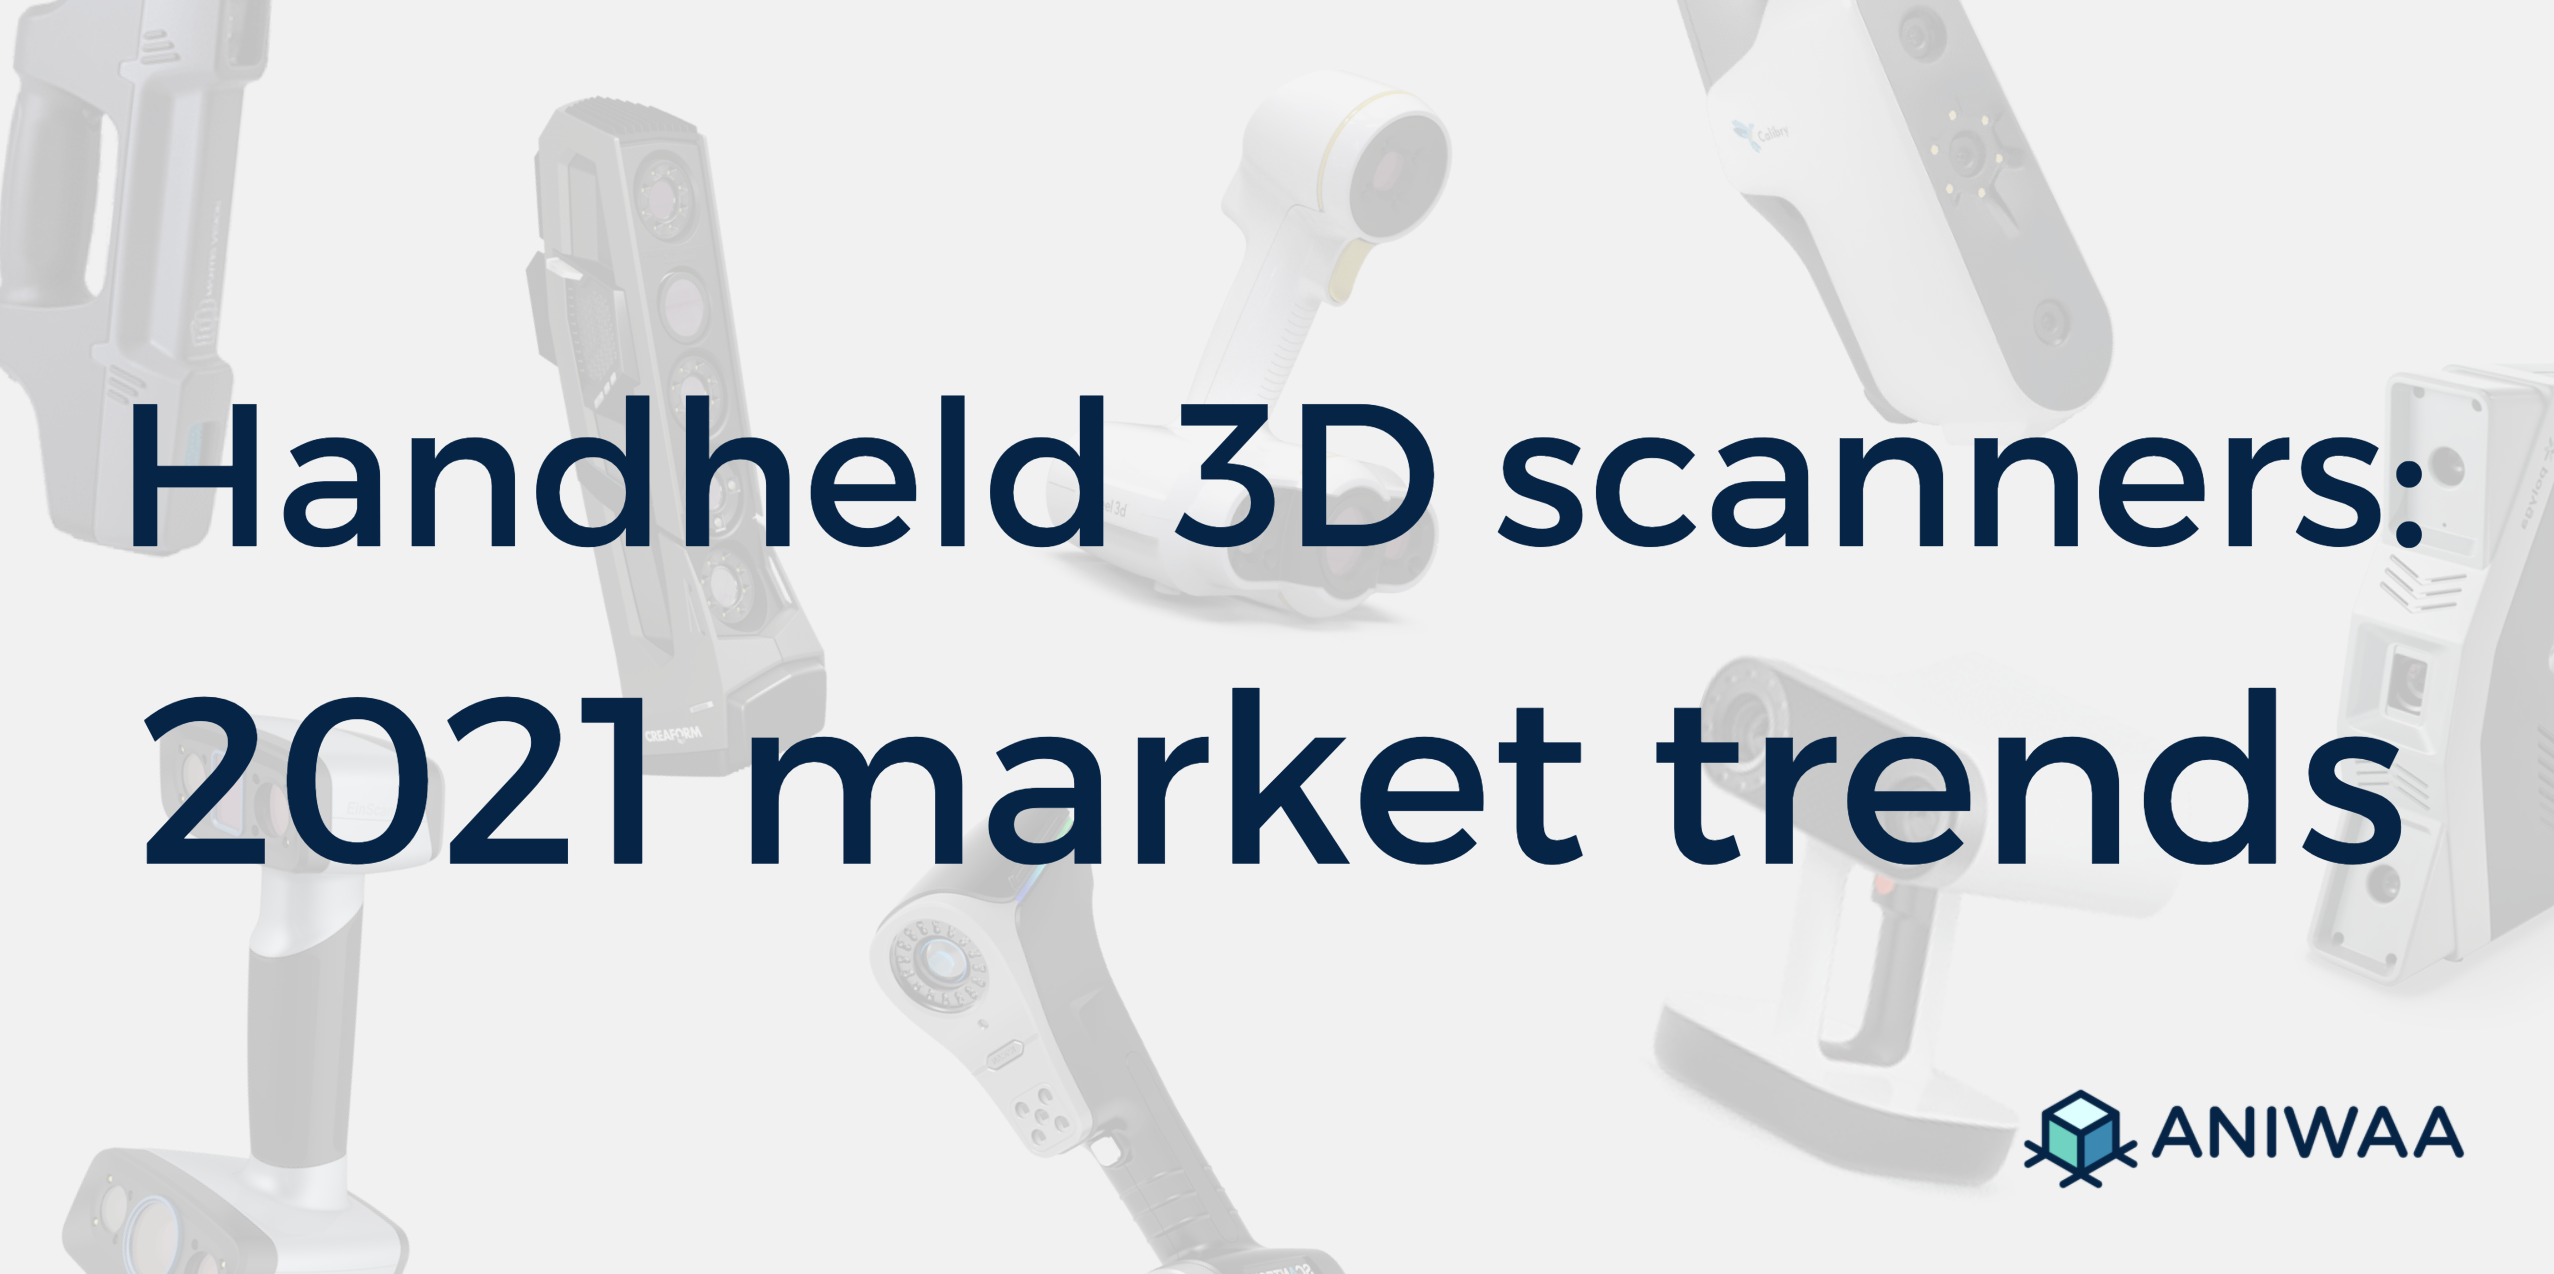 Updating our 2021 handheld 3D scanners buyer's guide: key takeaways and market insights